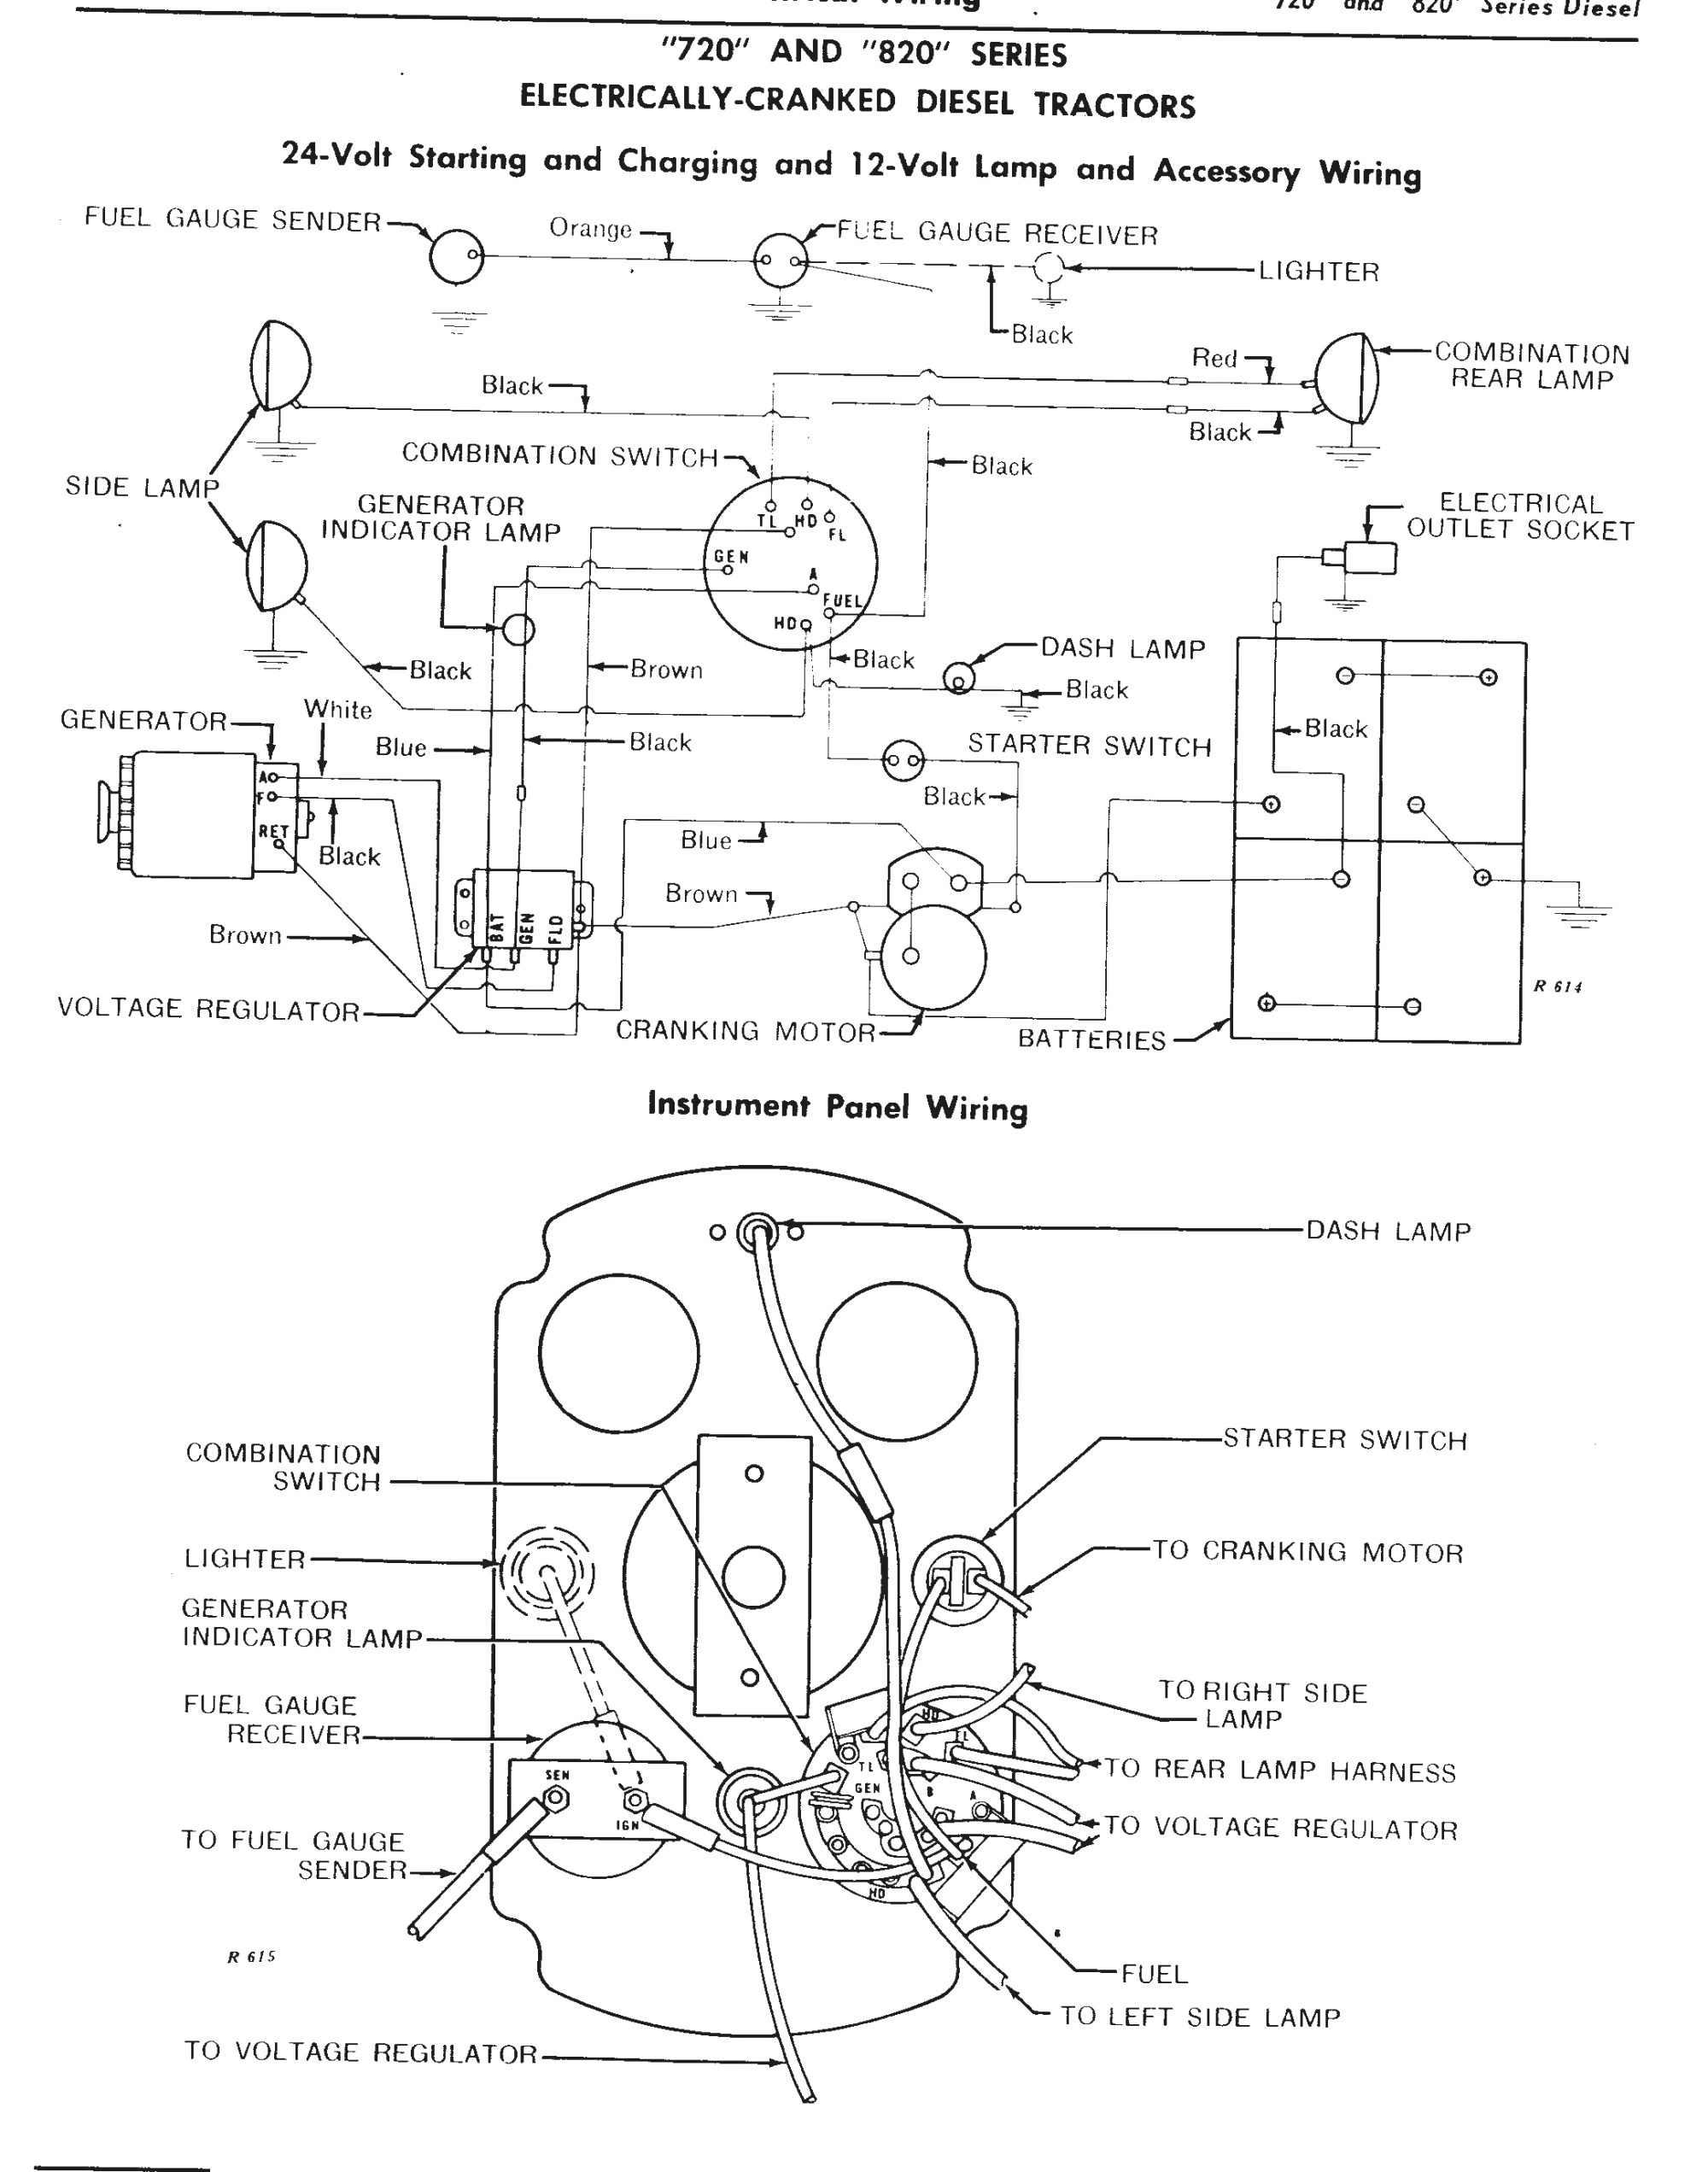 hight resolution of john deere 720 wiring diagram